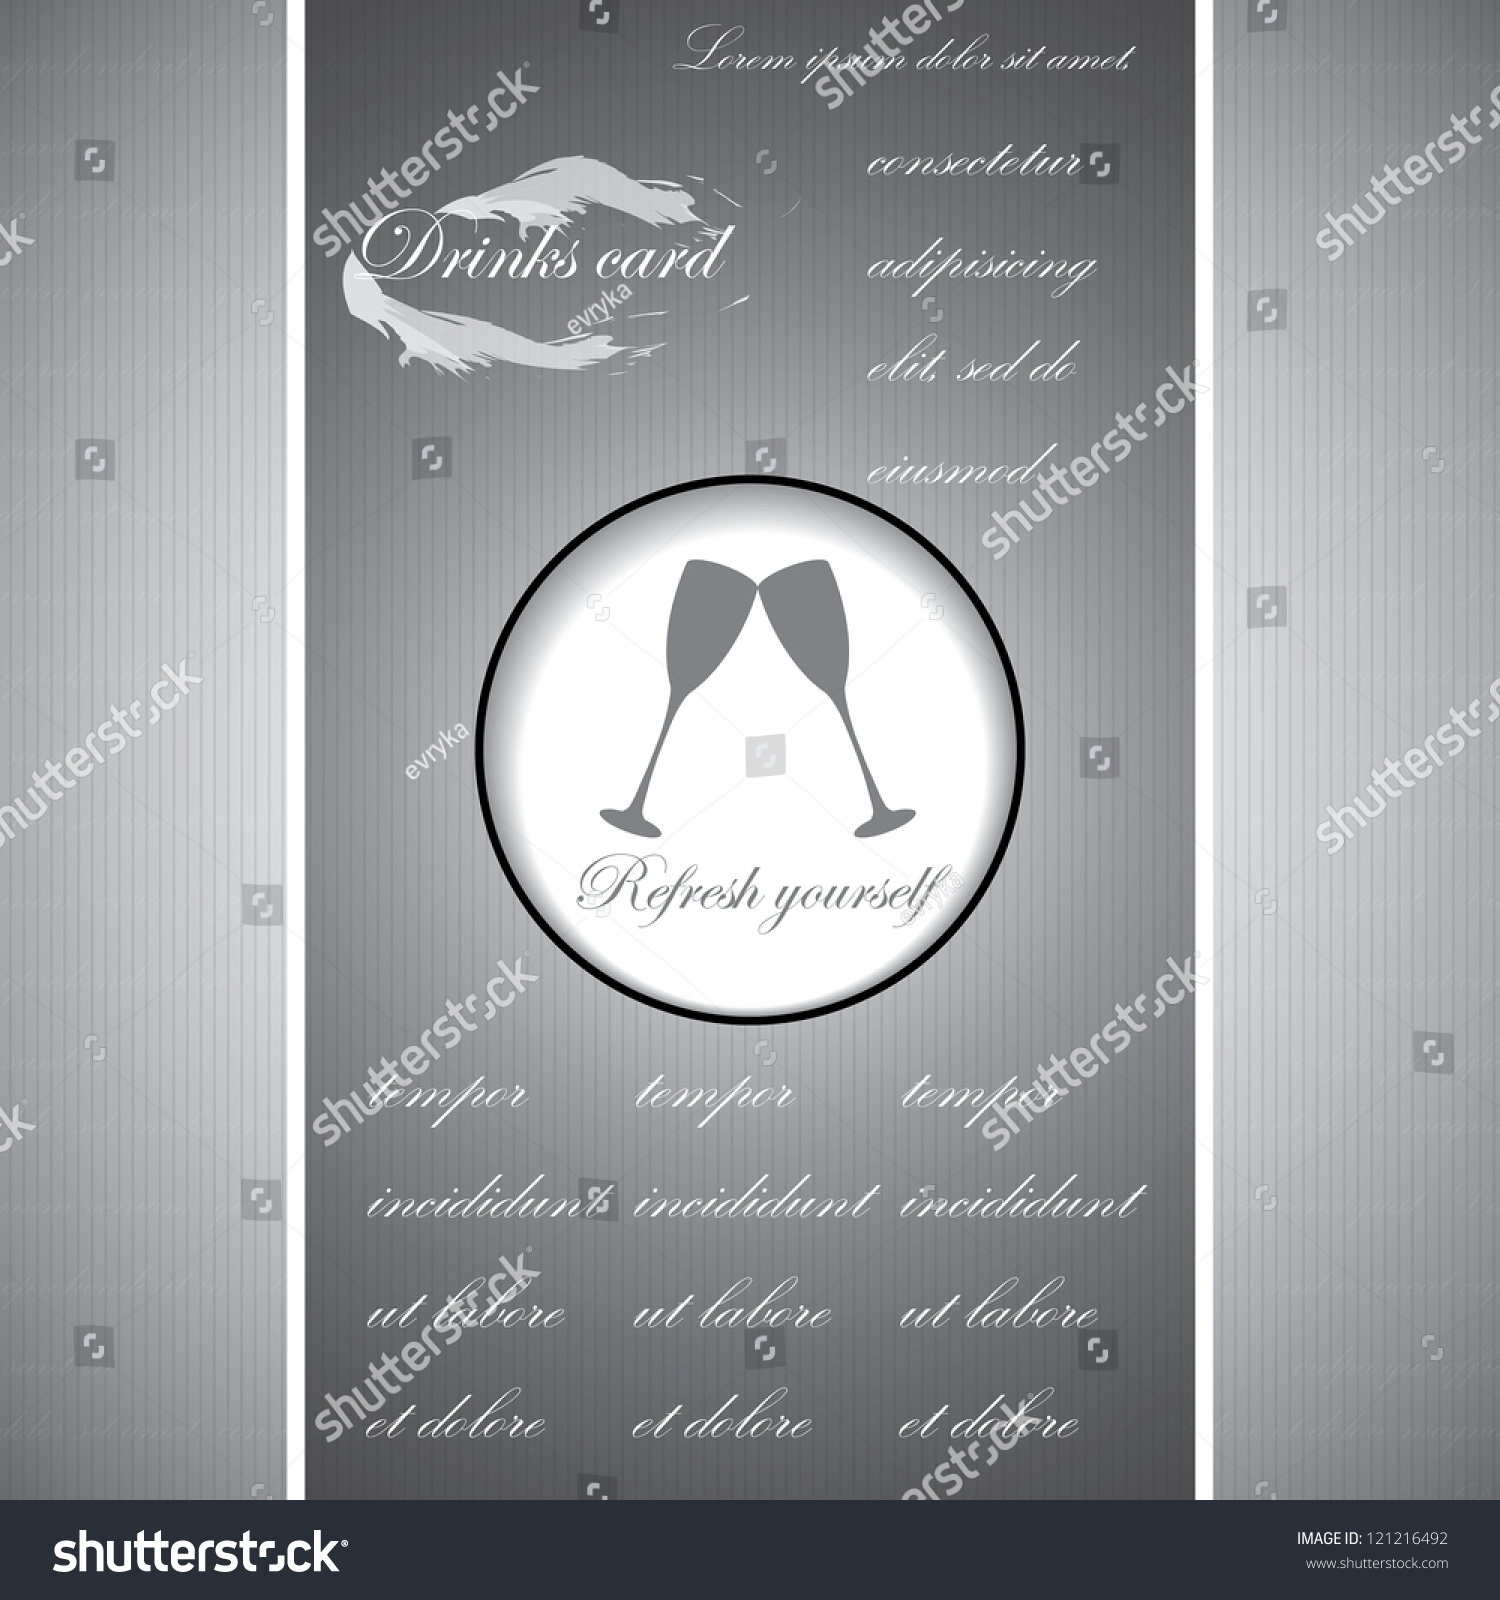 drinks business cards restaurant silver background stock vector